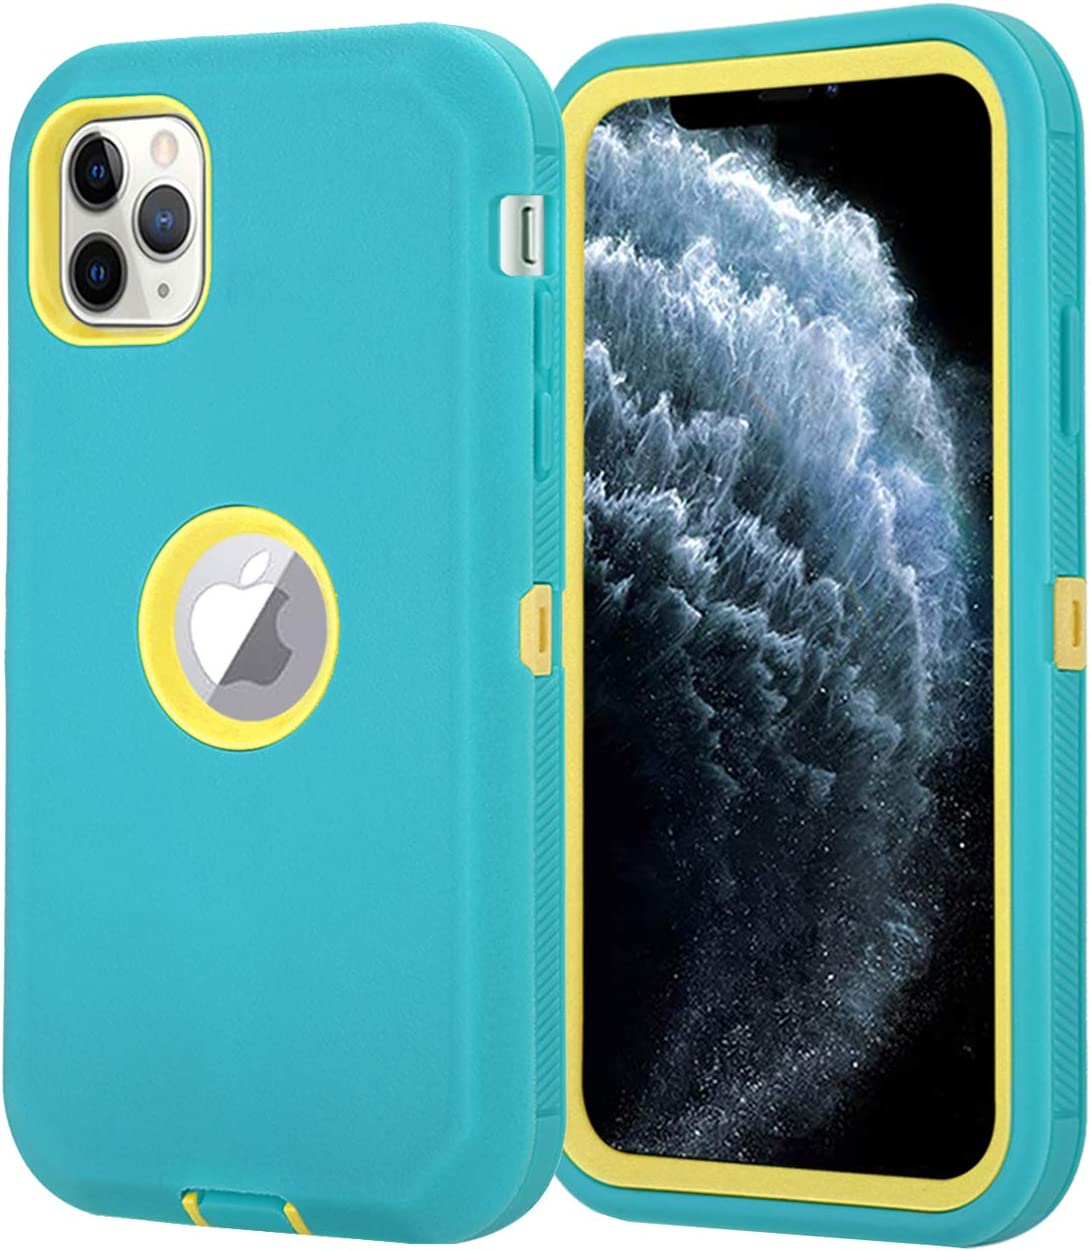 Aimoll-88 for iPhone 11 Pro Max Case, Full Body [with Built-in Screen Protector] Rugged Heavy Duty Shockproof/Drop Proof 3-Layer Protective Cover for iPhone 11 Pro Max 6.5-inch (Green/Yellow)